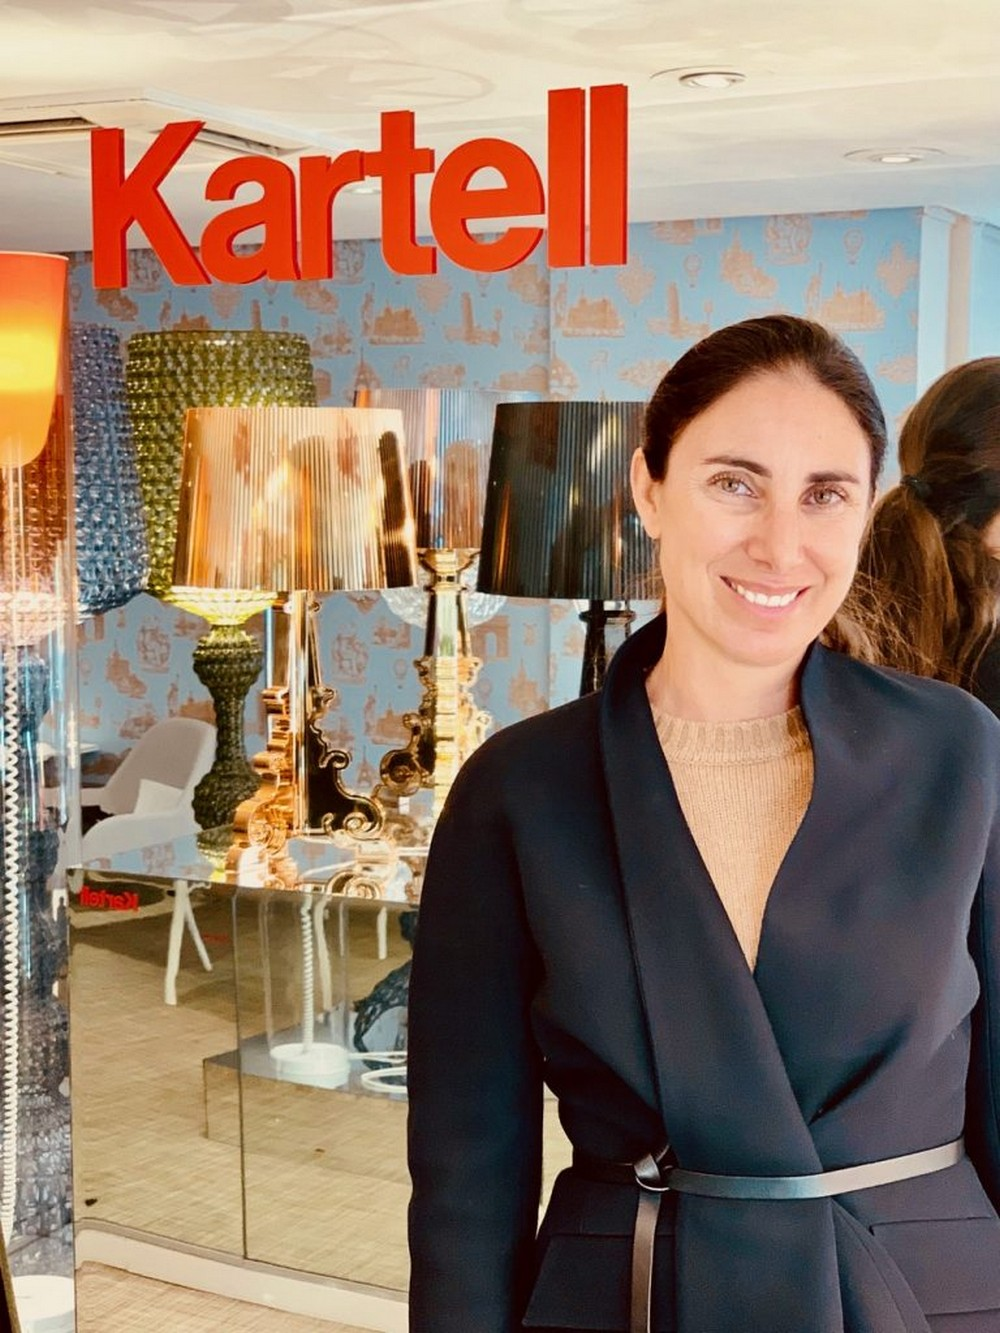 Kartell's Marketing and Retail Director Exclusive Interview By CovetED kartell Kartell's Marketing and Retail Director Exclusive Interview By CovetED Kartells Marketing and Retail Director Exclusive Interview By CovetED 2